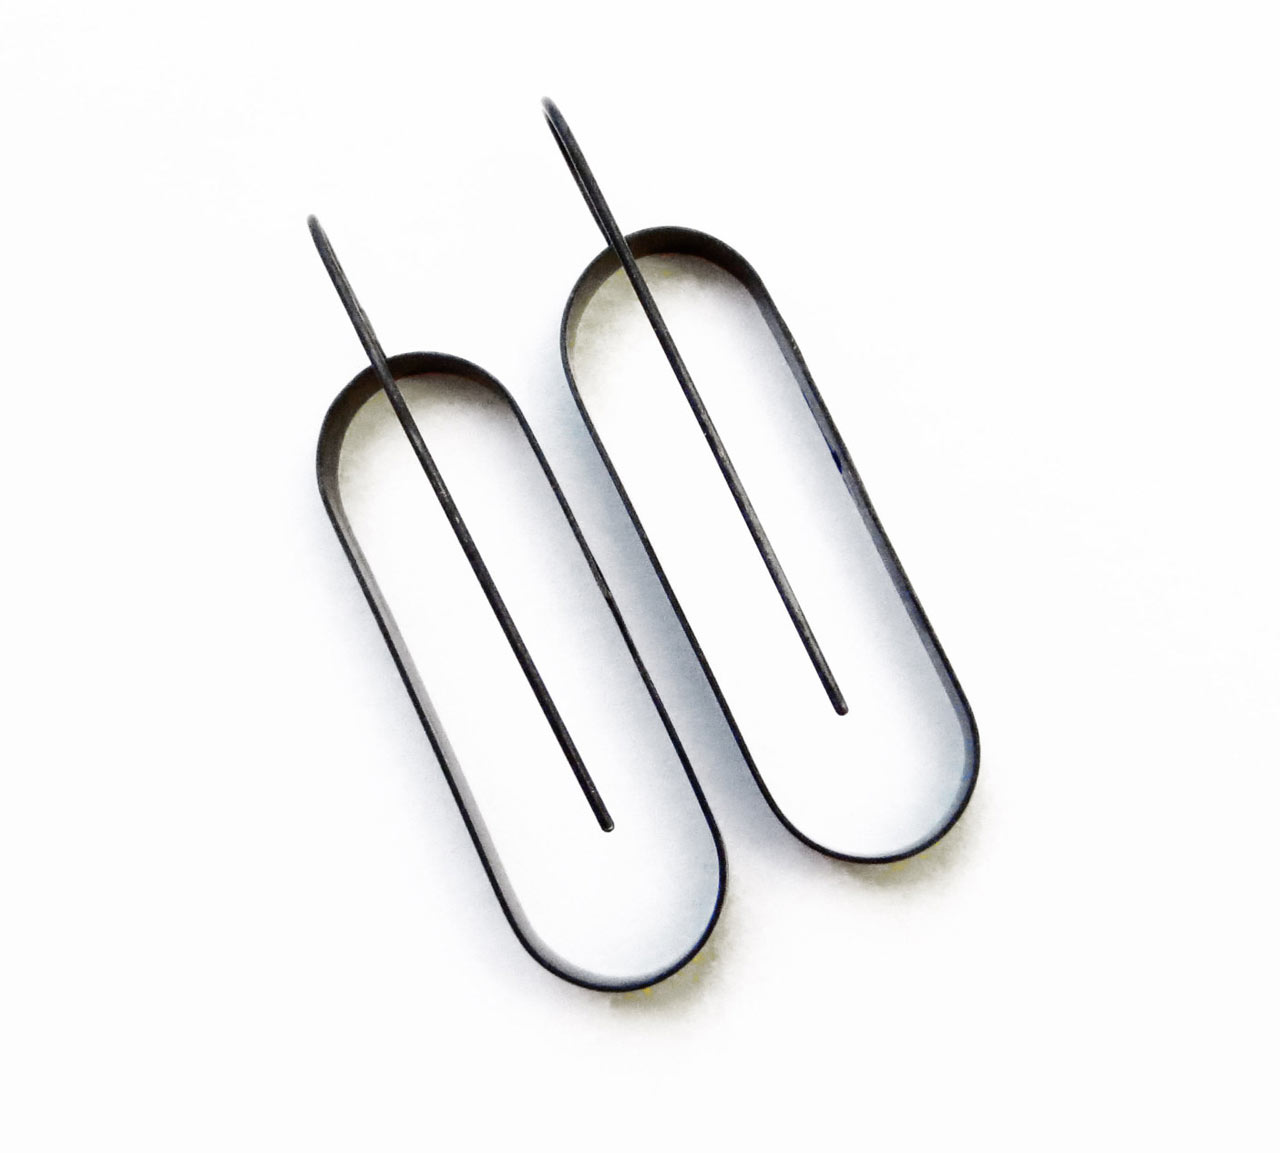 Modern Geometric Silver Jewelry by Laminar